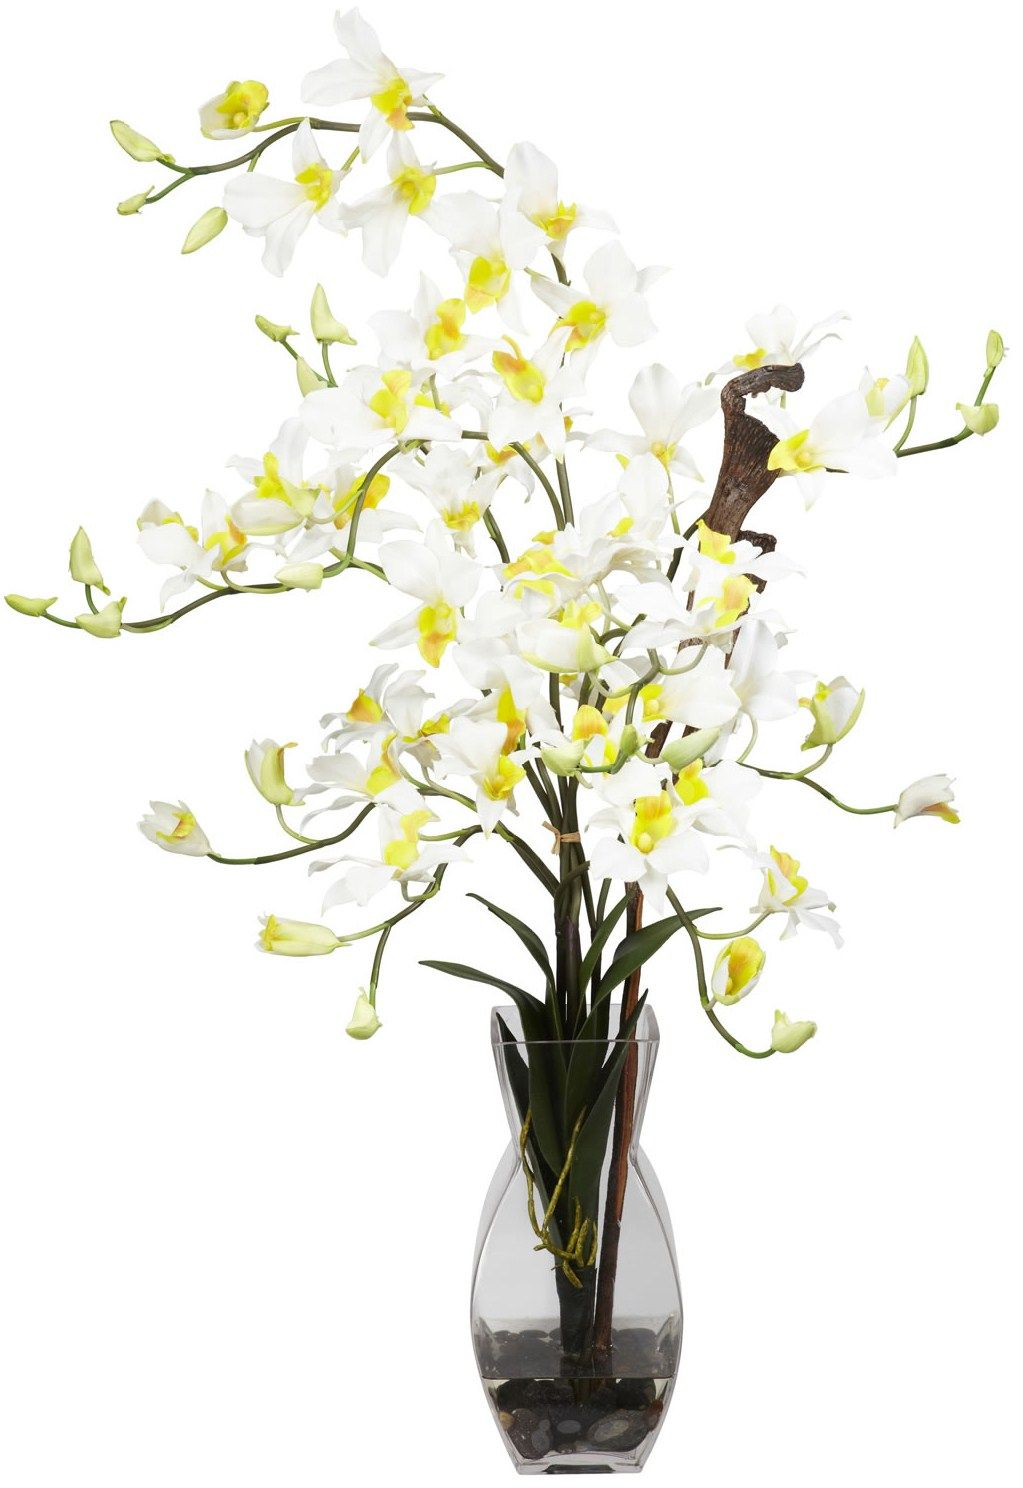 How to Use Acrylic Water in Your Silk Flower Arrangements